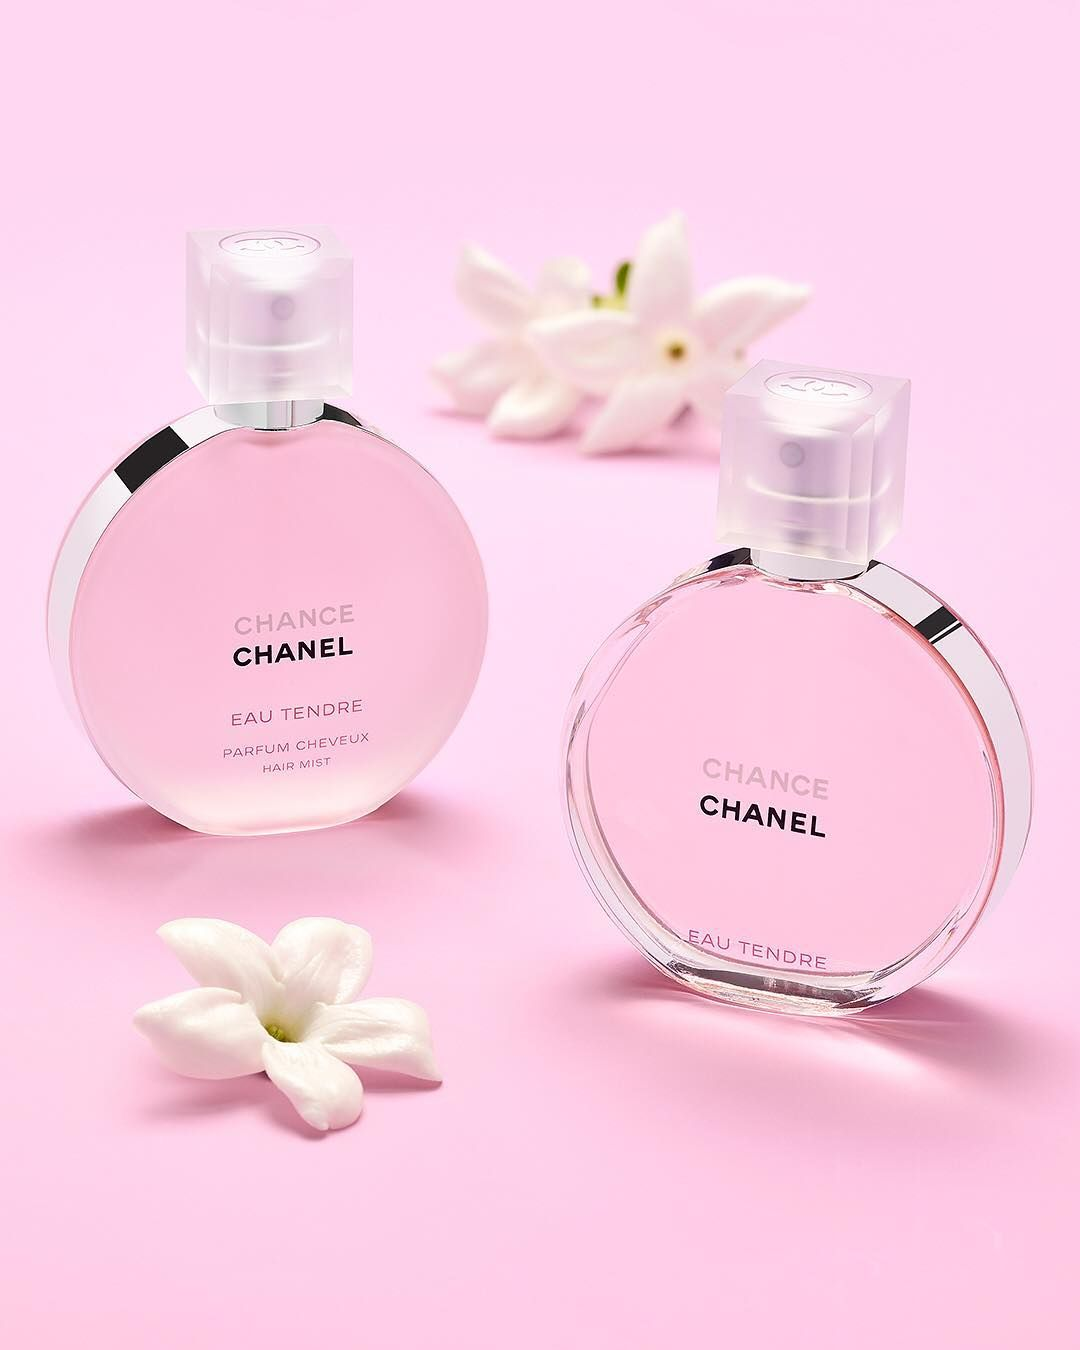 Multiply Your Chances With Chance Eau Tendre By Chanelofficial A Radiant Fruity Floral Fragrance Available In A Delicate Hair Mist And Vune Sperky